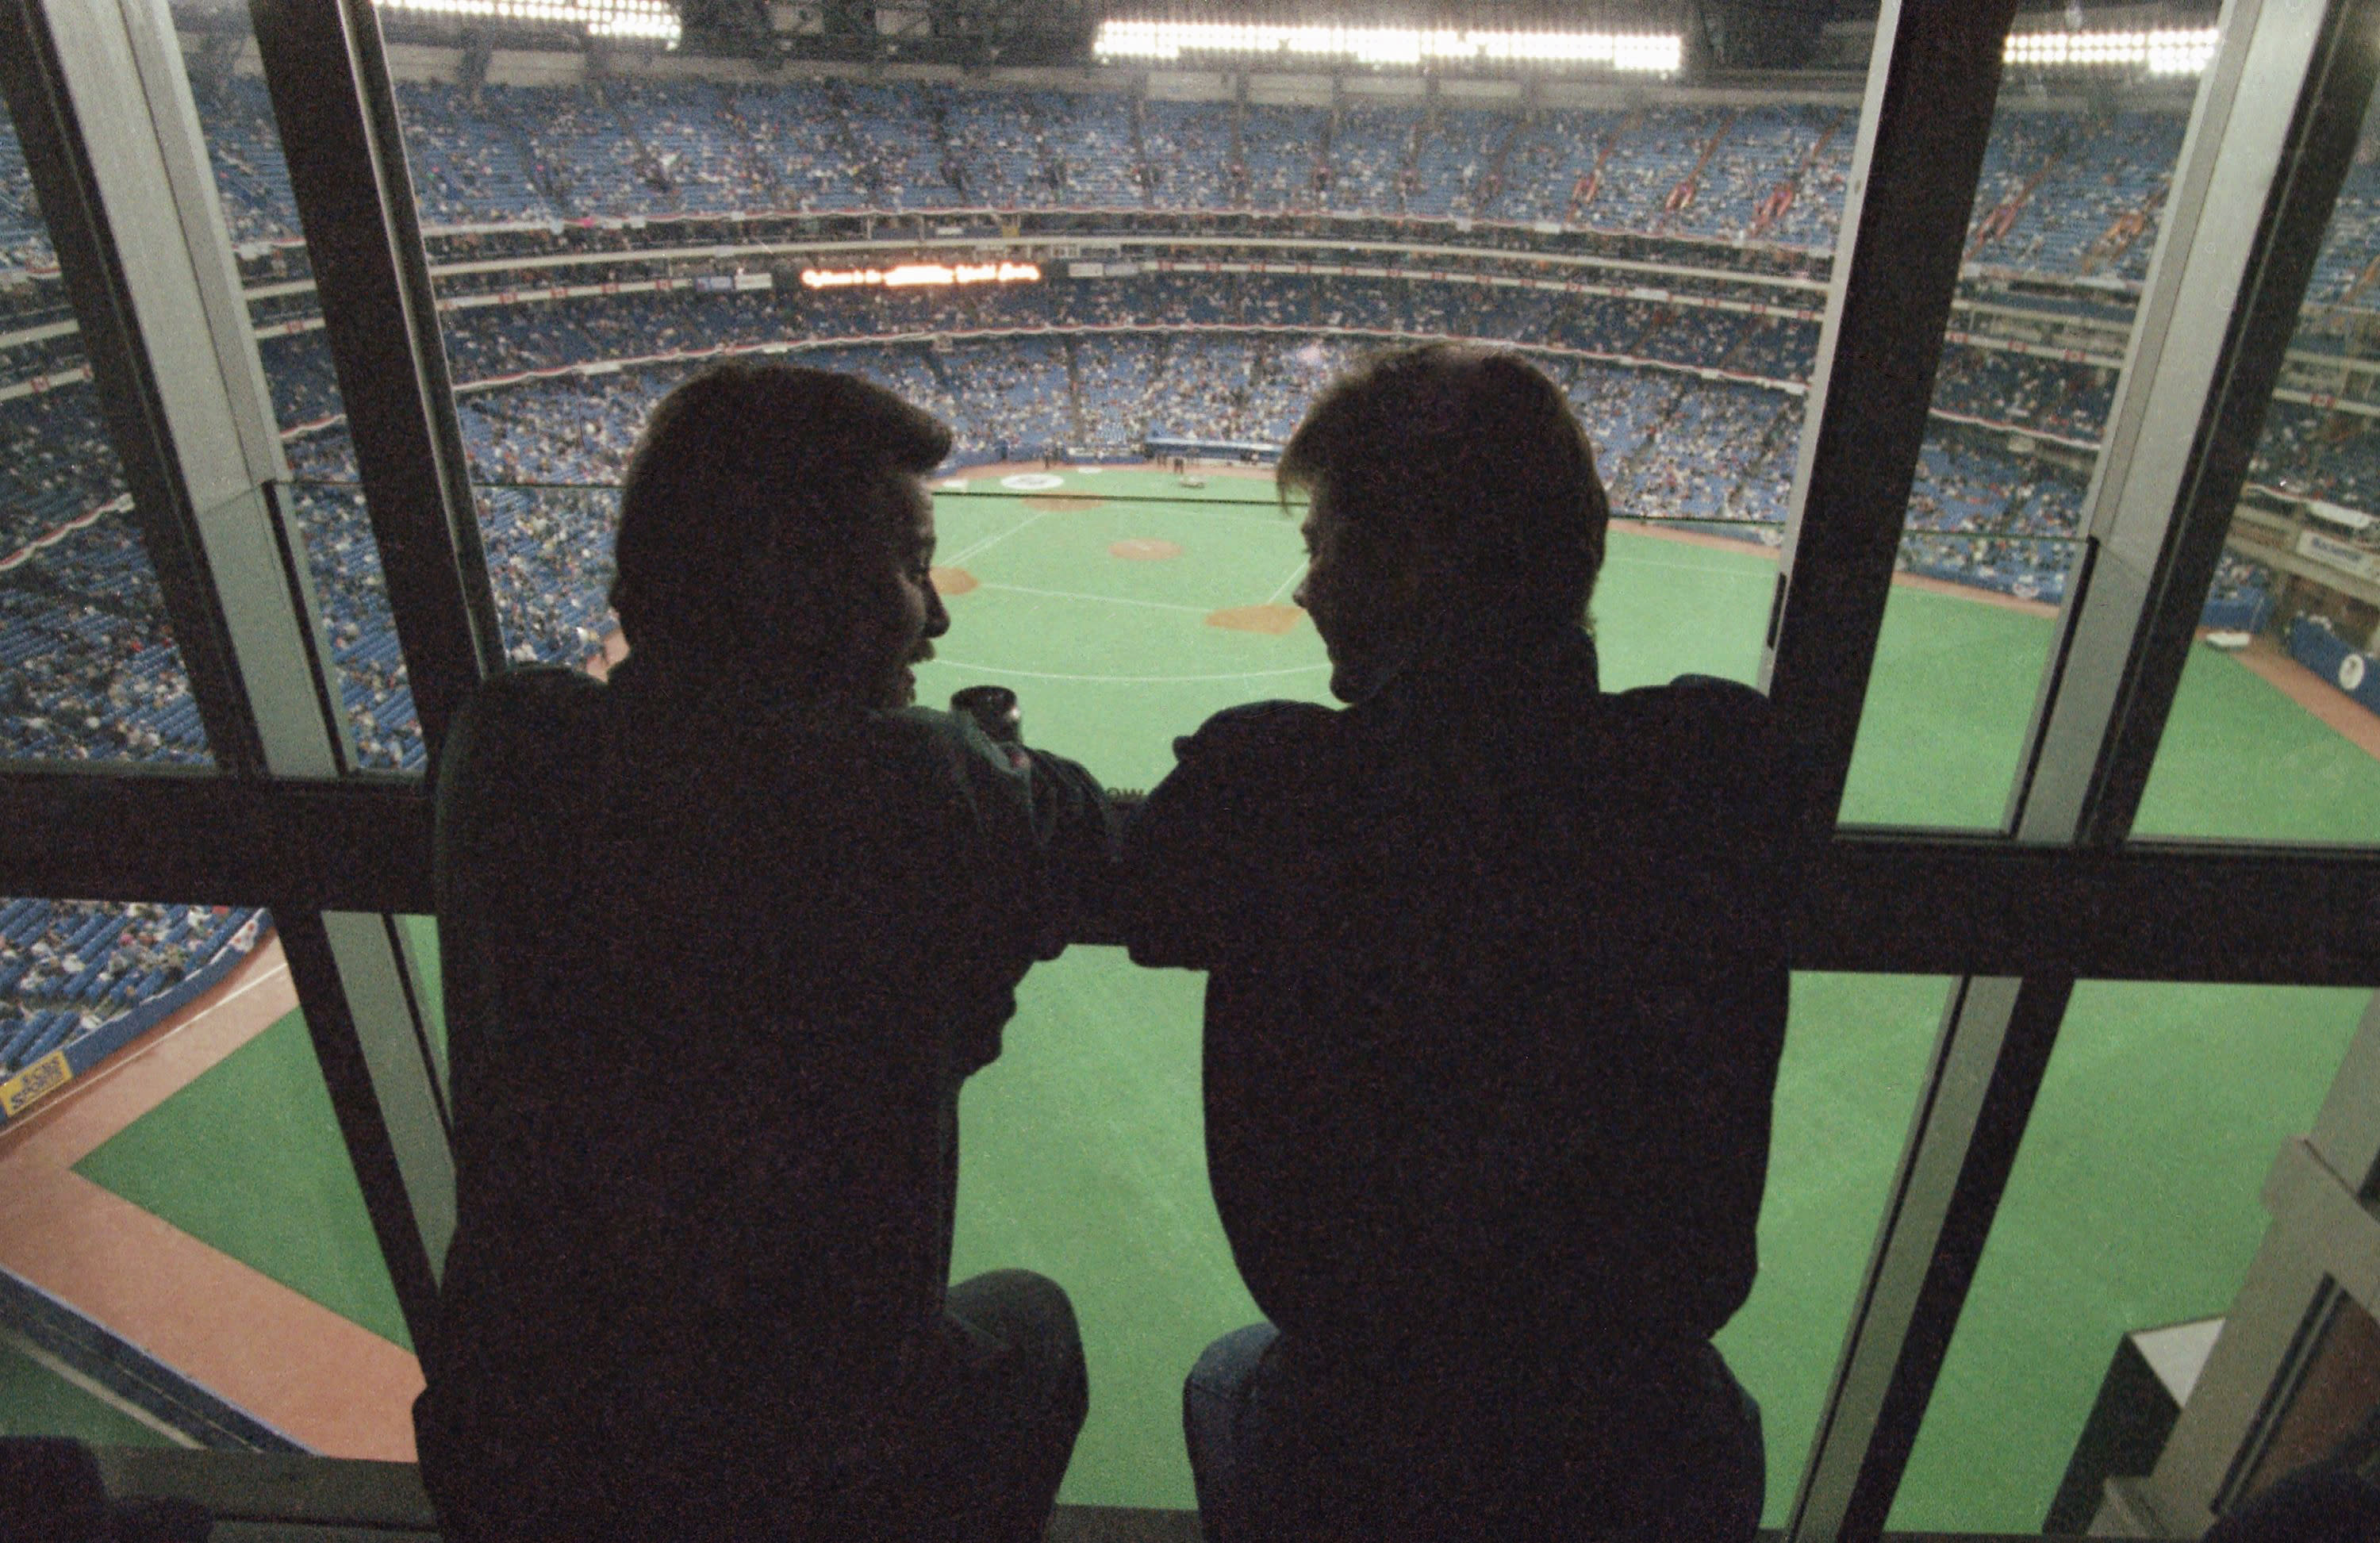 FILE - In this Oct. 22, 1992, file photo, spectators look out at the field from a window of the SkyDome Hotel before Game 5 of the World Series between the Toronto Blue Jays and the Atlanta Braves in Toronto. All 30 Major League Baseball teams will train at their regular-season ballparks for the pandemic-shortened season after the Blue Jays received a Canadian federal government exemption on Thursday, July 2, 2020, to work out at Rogers Centre. Toronto will move camp from its spring training complex in Dunedin, Fla., where players reported for intake testing. The Blue Jays will create a quarantine environment at Rogers Centre and the adjoining Toronto Marriott City Centre Hotel, formerly the SkyDome, which overlooks the field. (AP Photo/Rusty Kennedy, File)